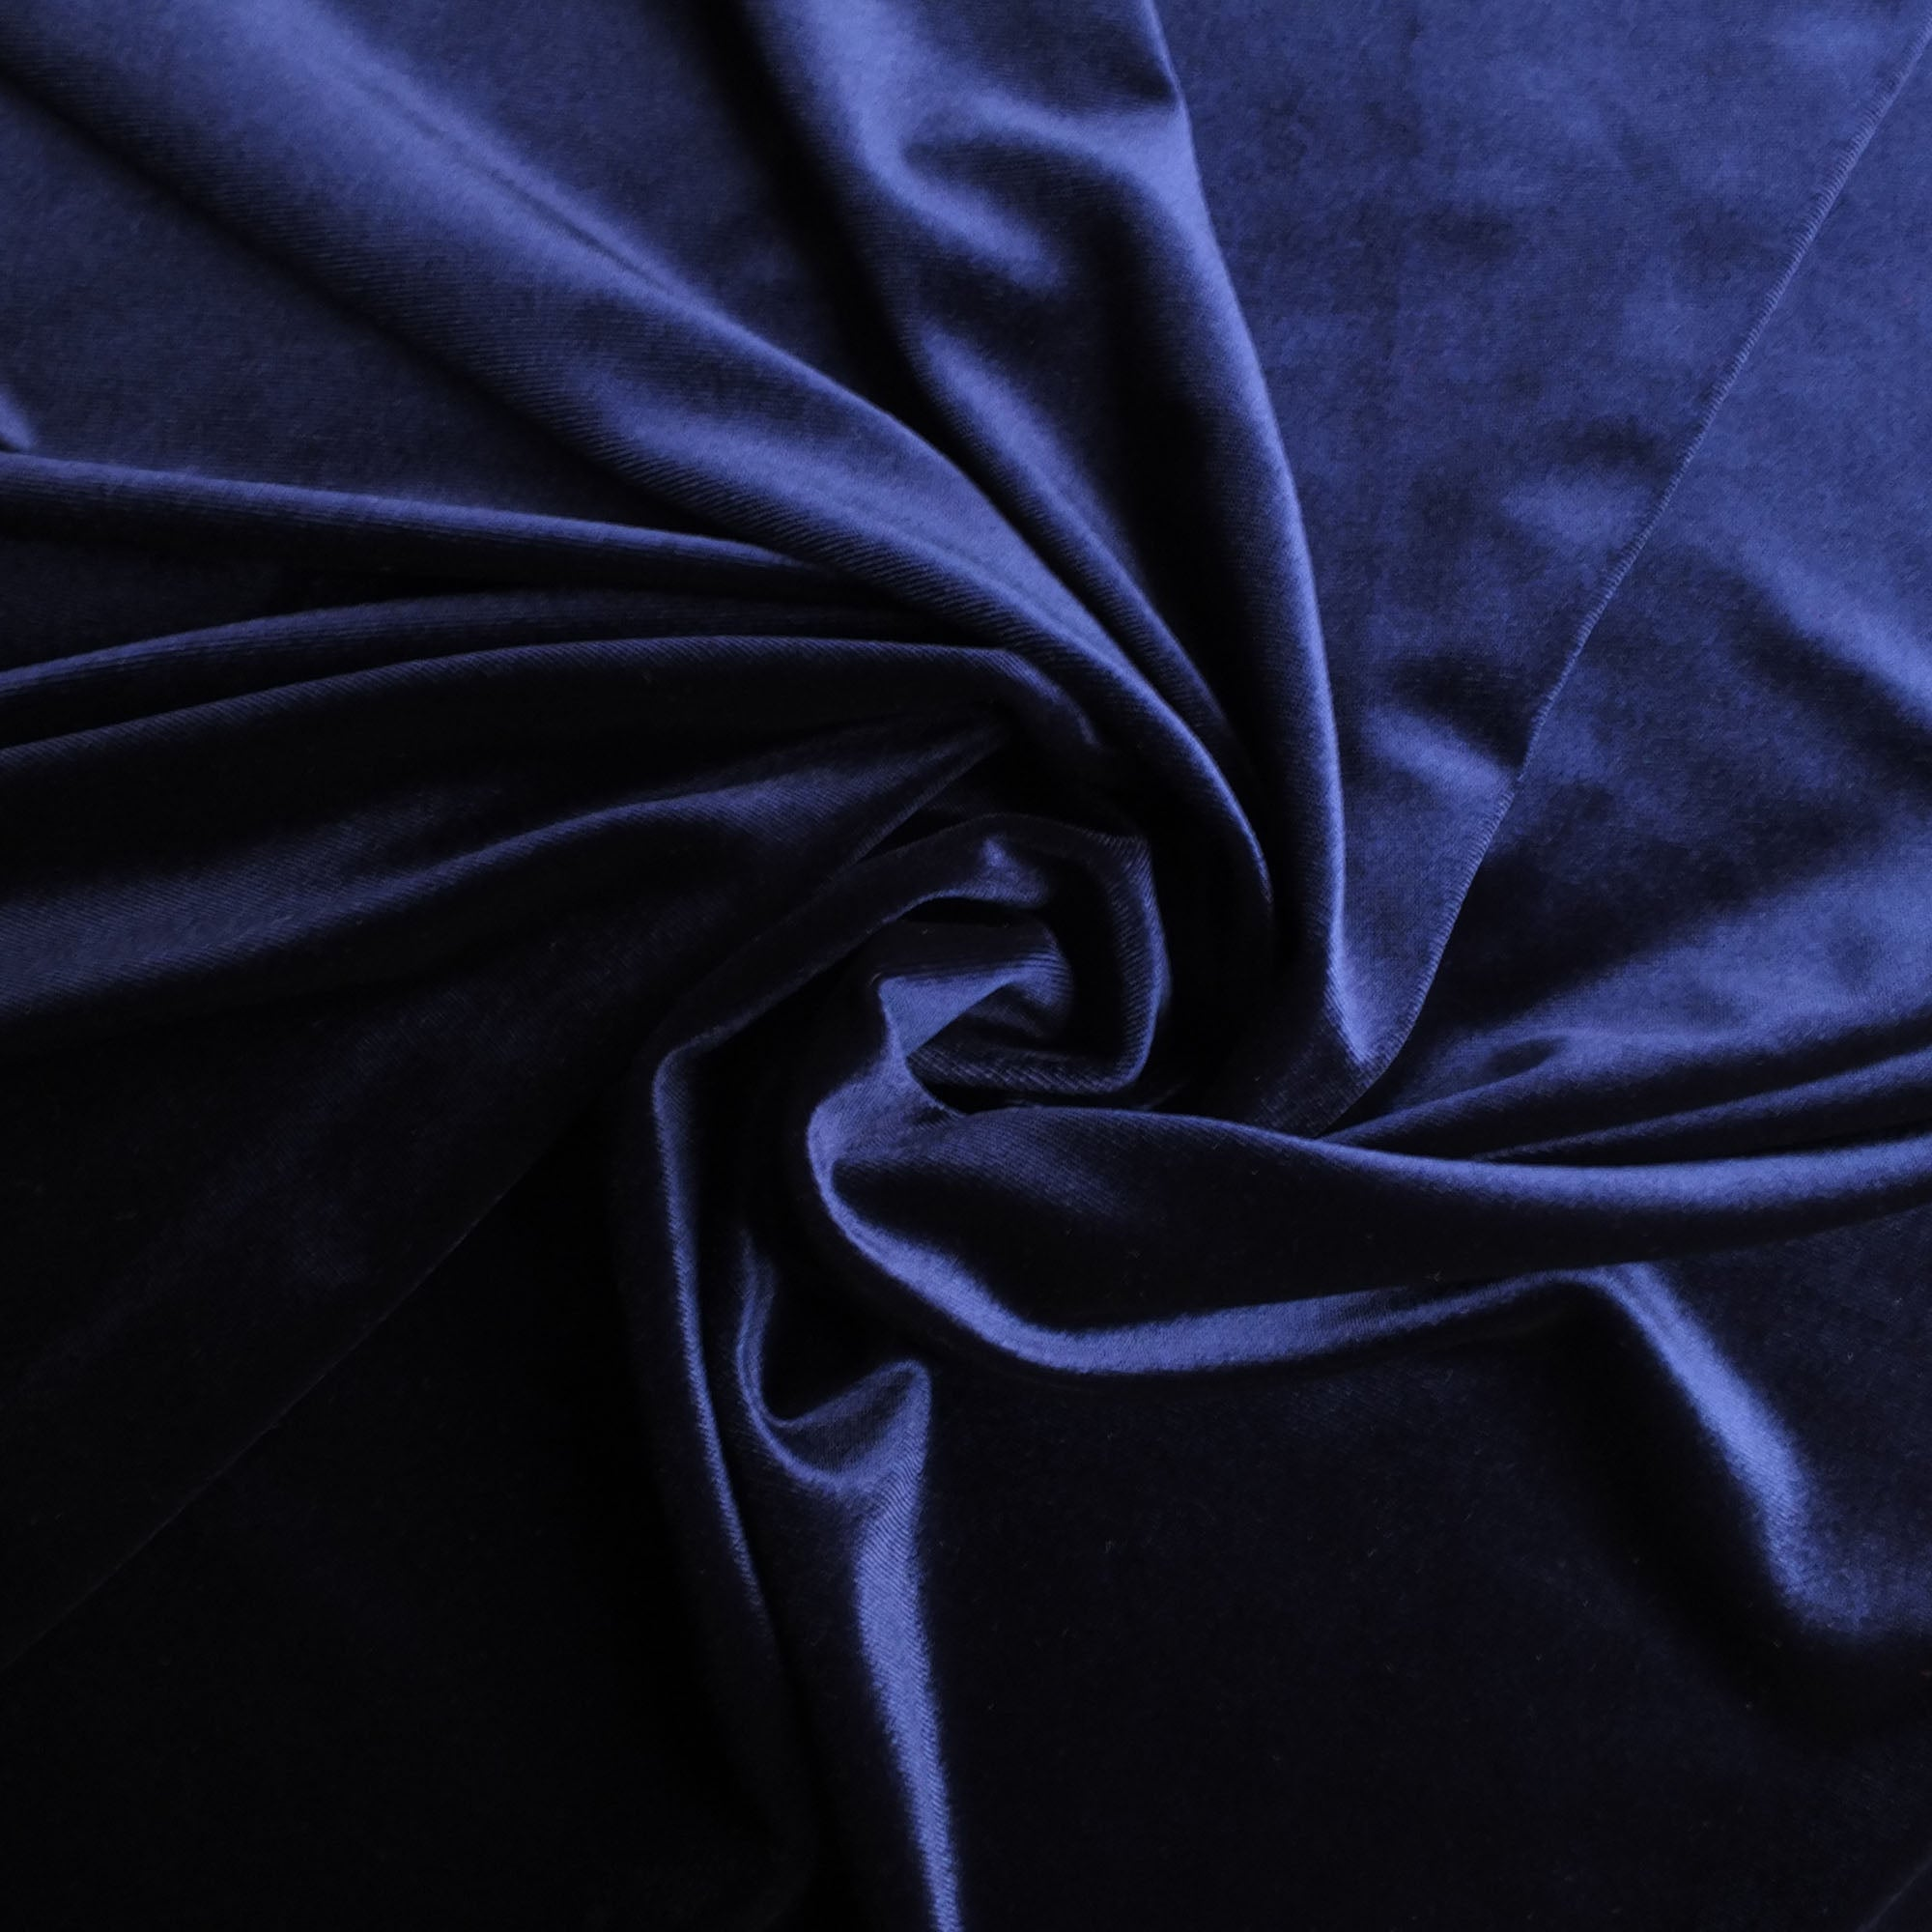 NAVY Luxury Quality Polyester Stretchy VELVET Fabric Material